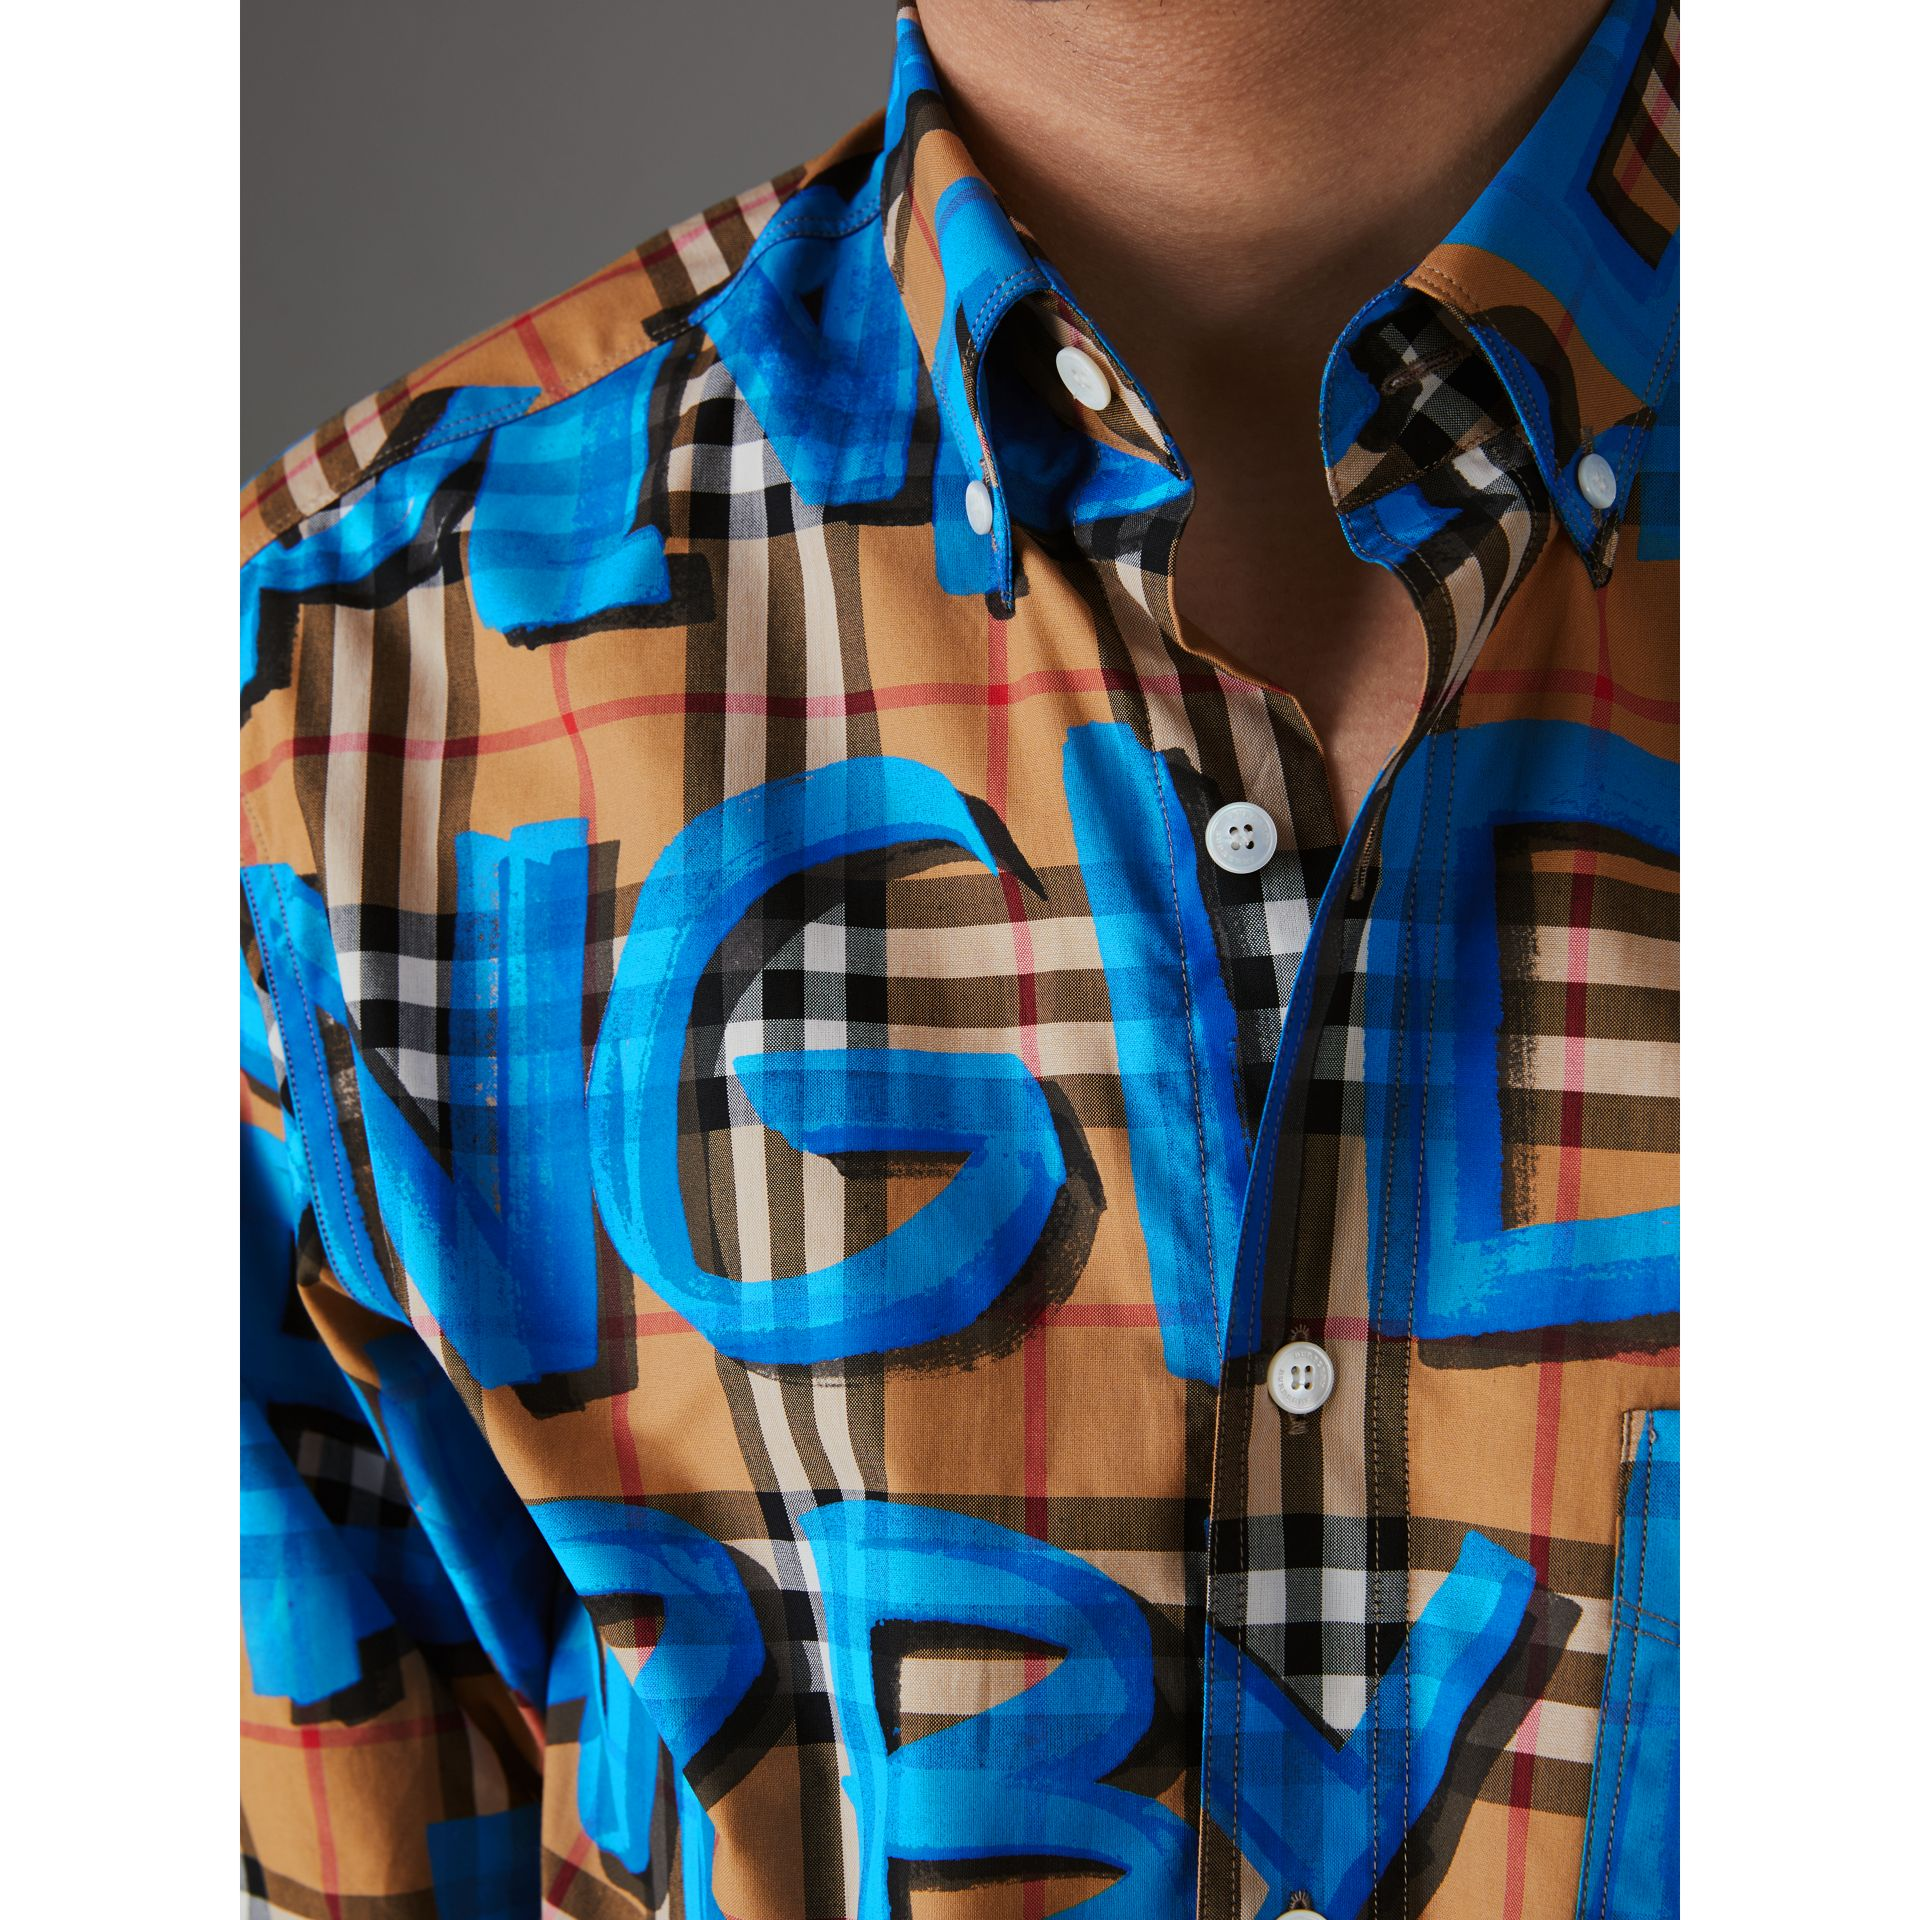 Graffiti Print Vintage Check Shirt in Bright Blue - Men | Burberry Australia - gallery image 1